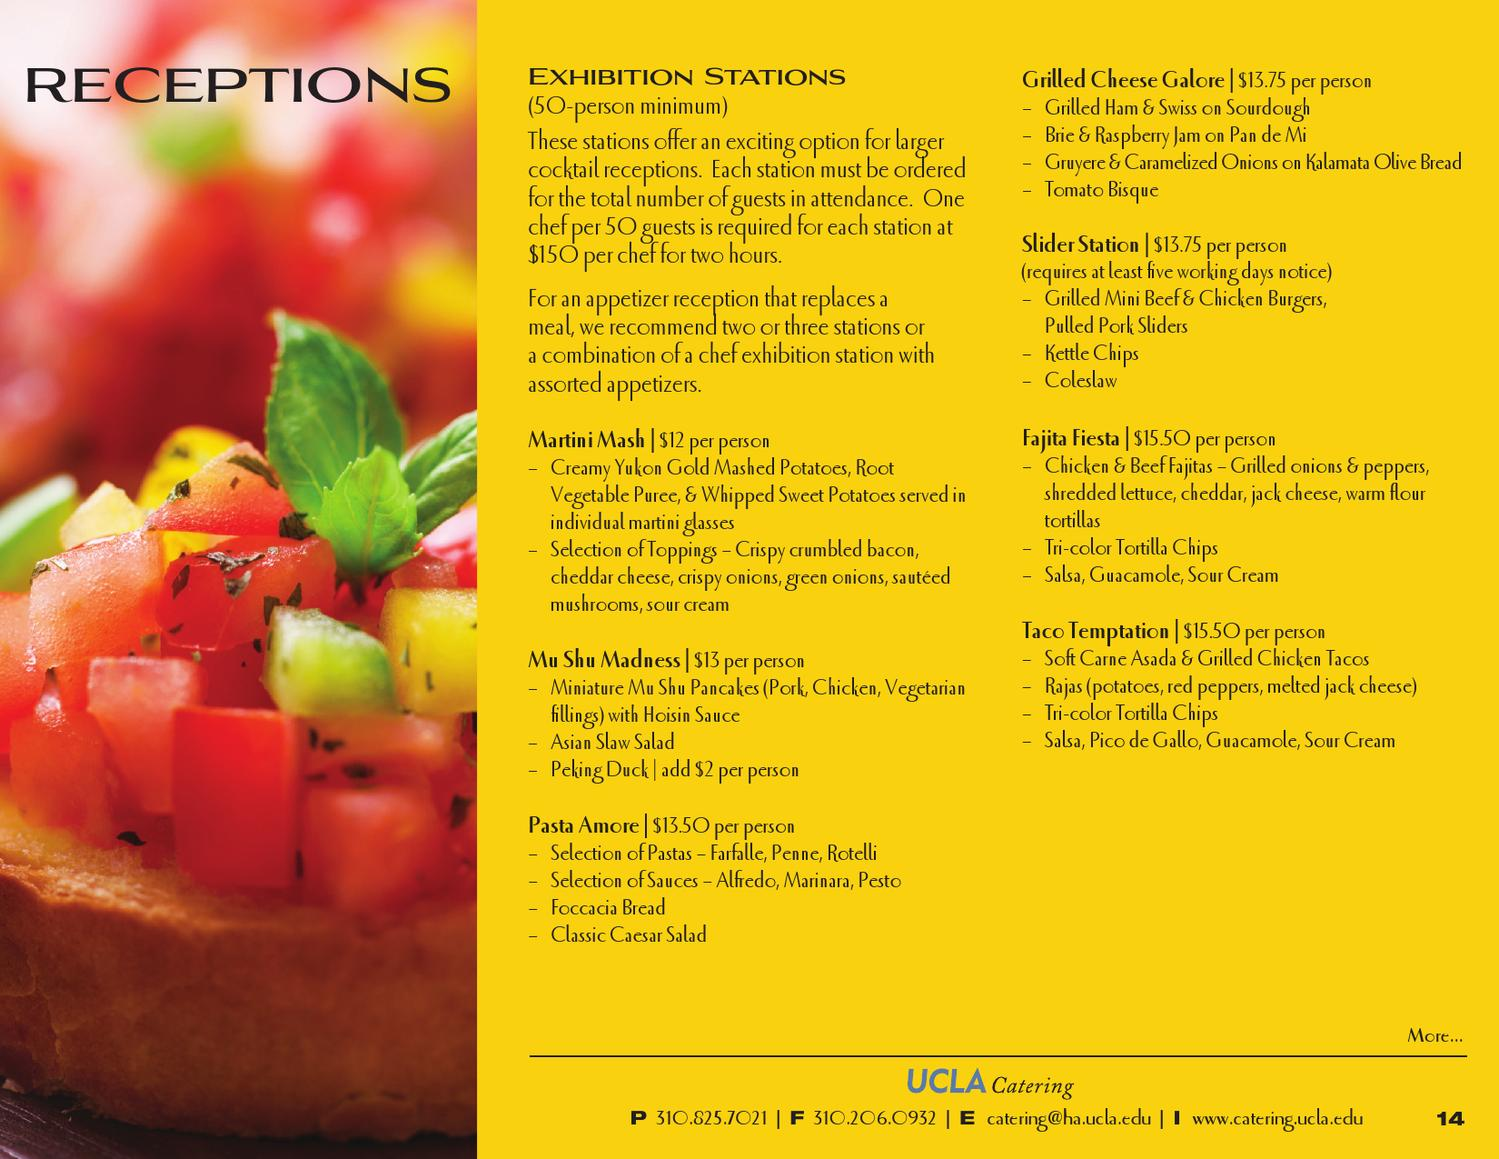 UCLA Catering - Receptions Menu by UCLA HHS Marketing - issuu